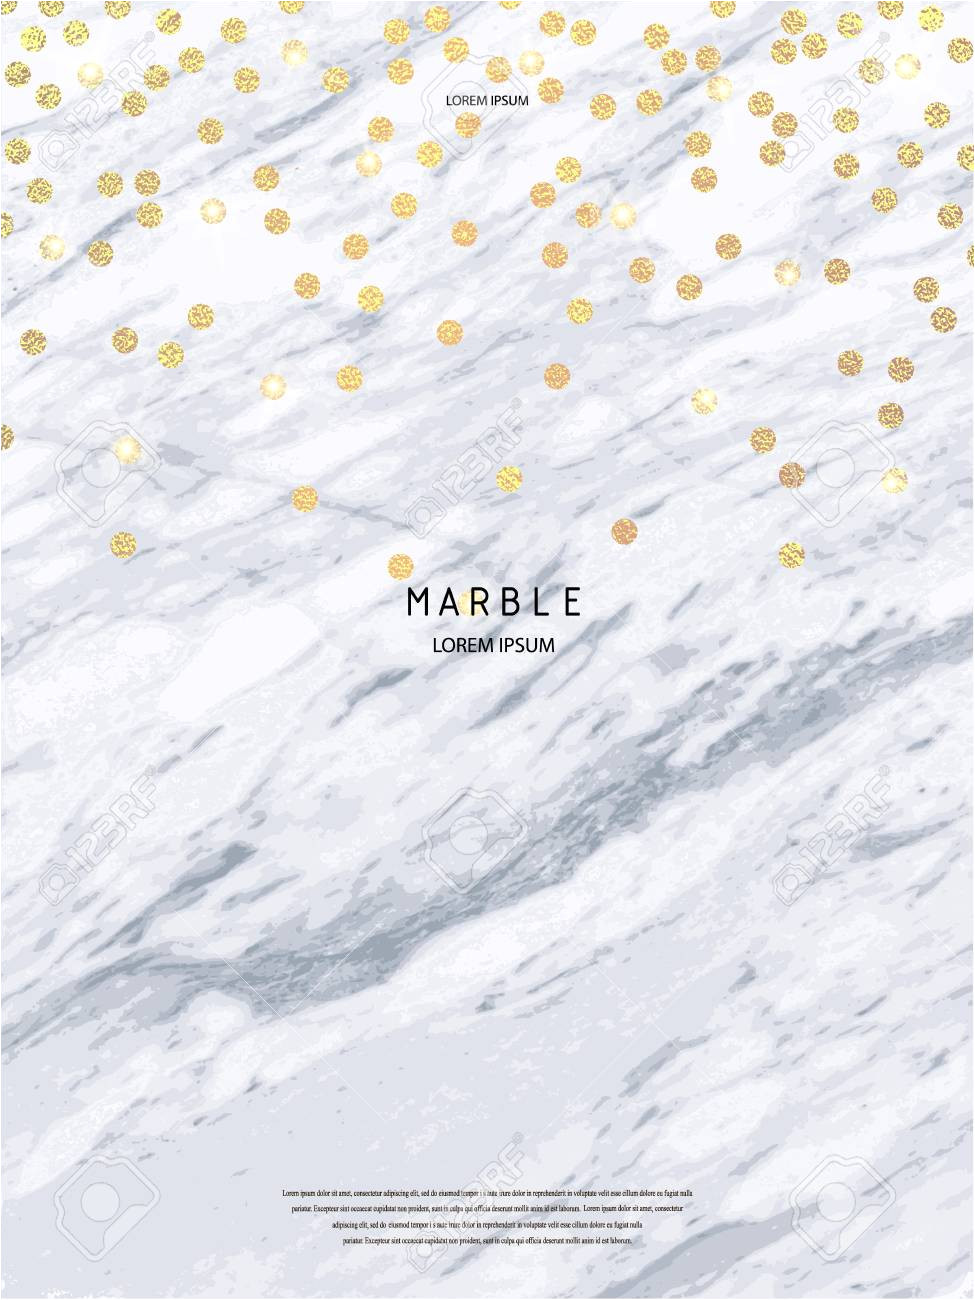 109180272 marble texture trendy template for new year party wedding birthday flyers logo party invitation card jpg